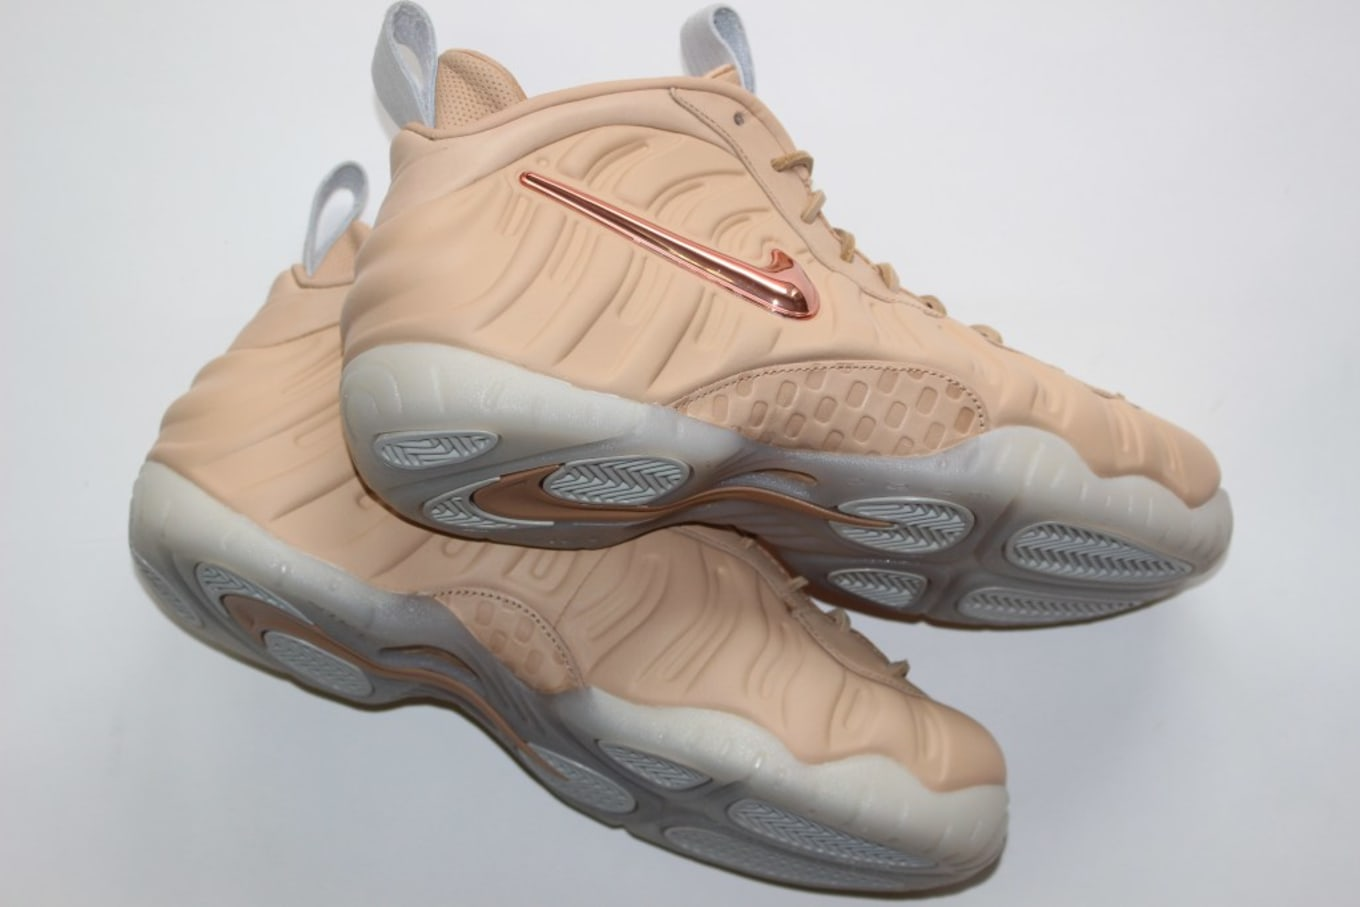 f2f0a60496da Nike Air Foamposite Pro Premium Veg Tan Leather Release Date